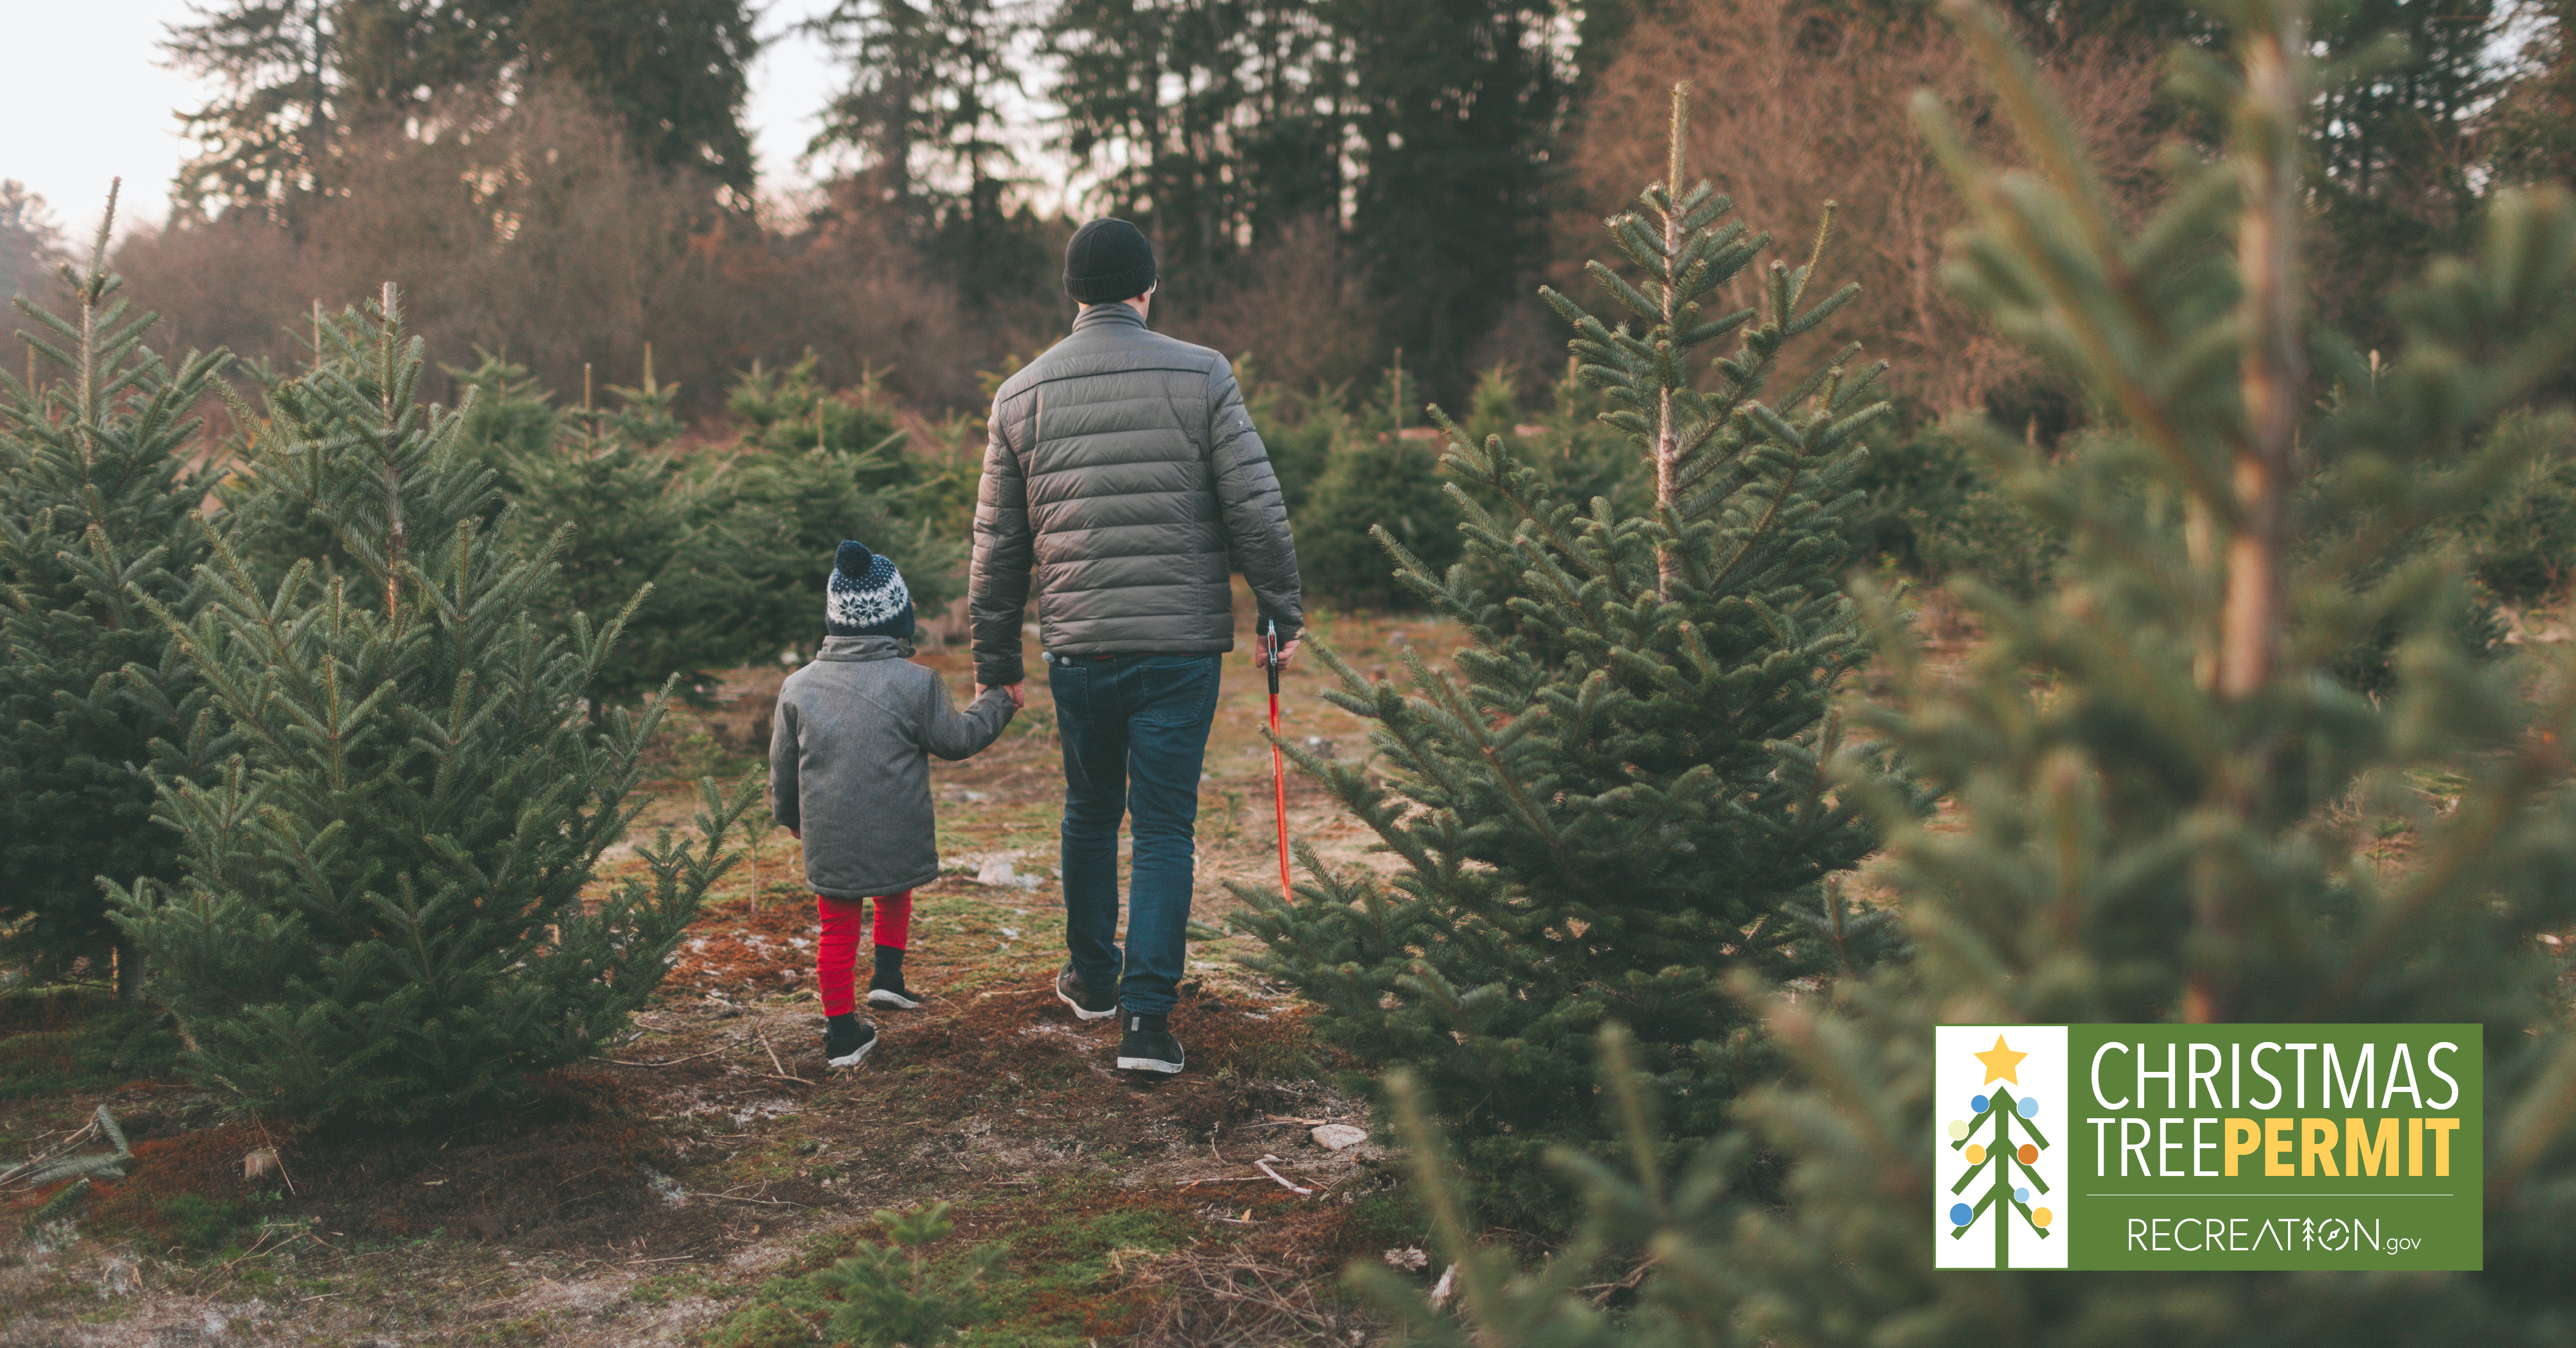 Christmas Tree permits are now available for purchase on Recreation.gov